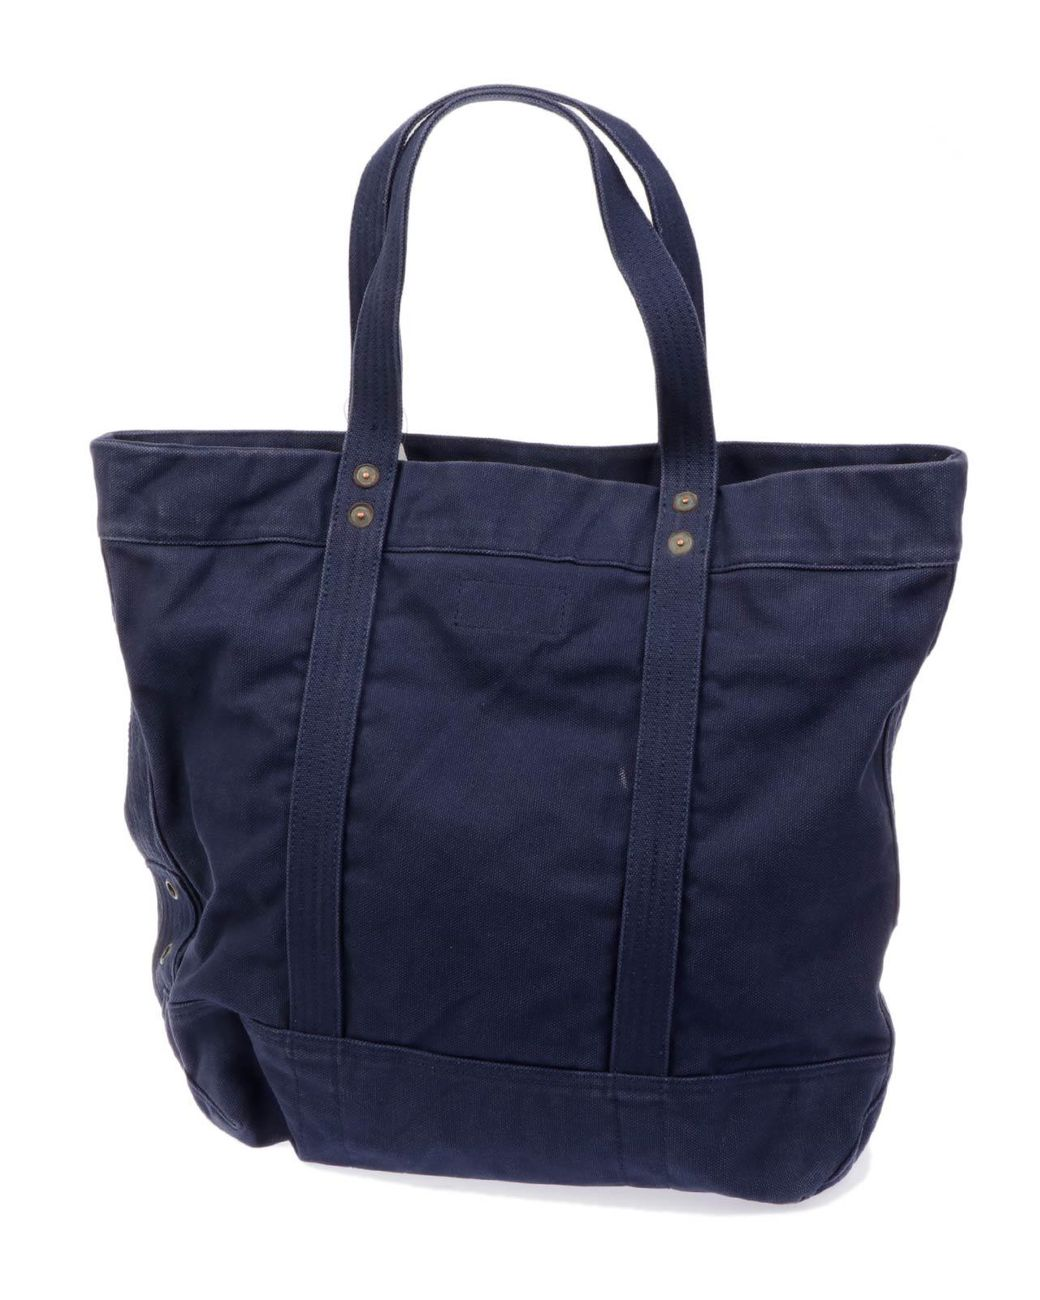 527f06e864 Polo Ralph Lauren Big Pp Tote in Blue for Men - Lyst